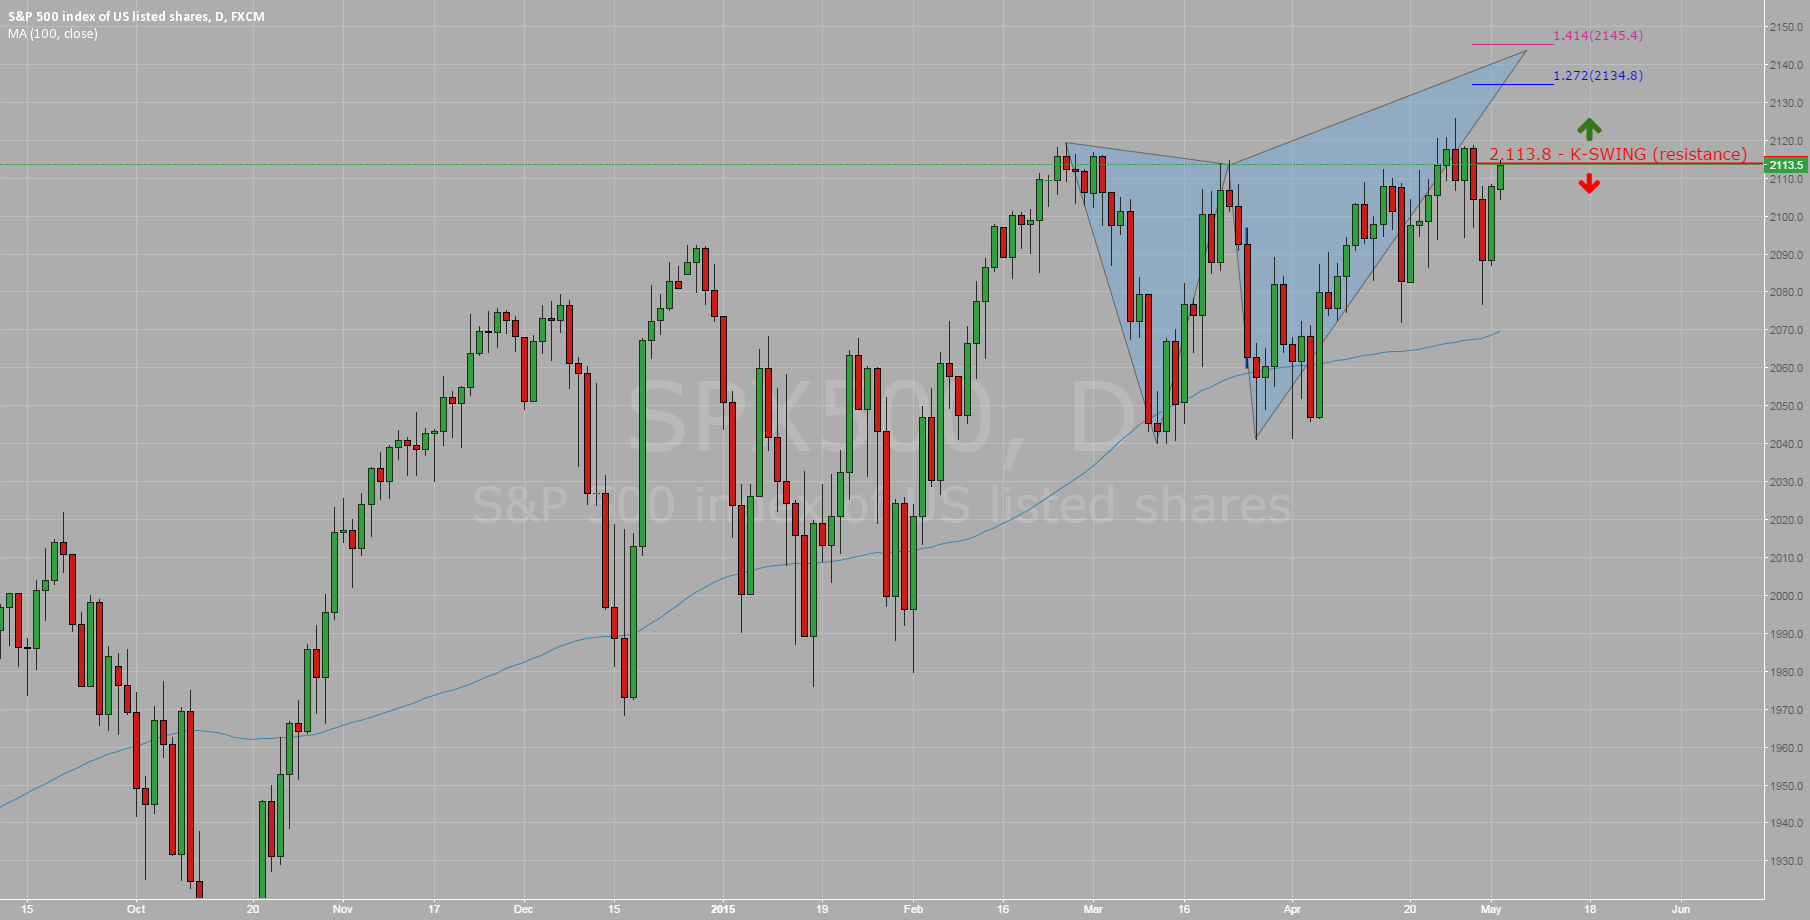 SP500: Key Level